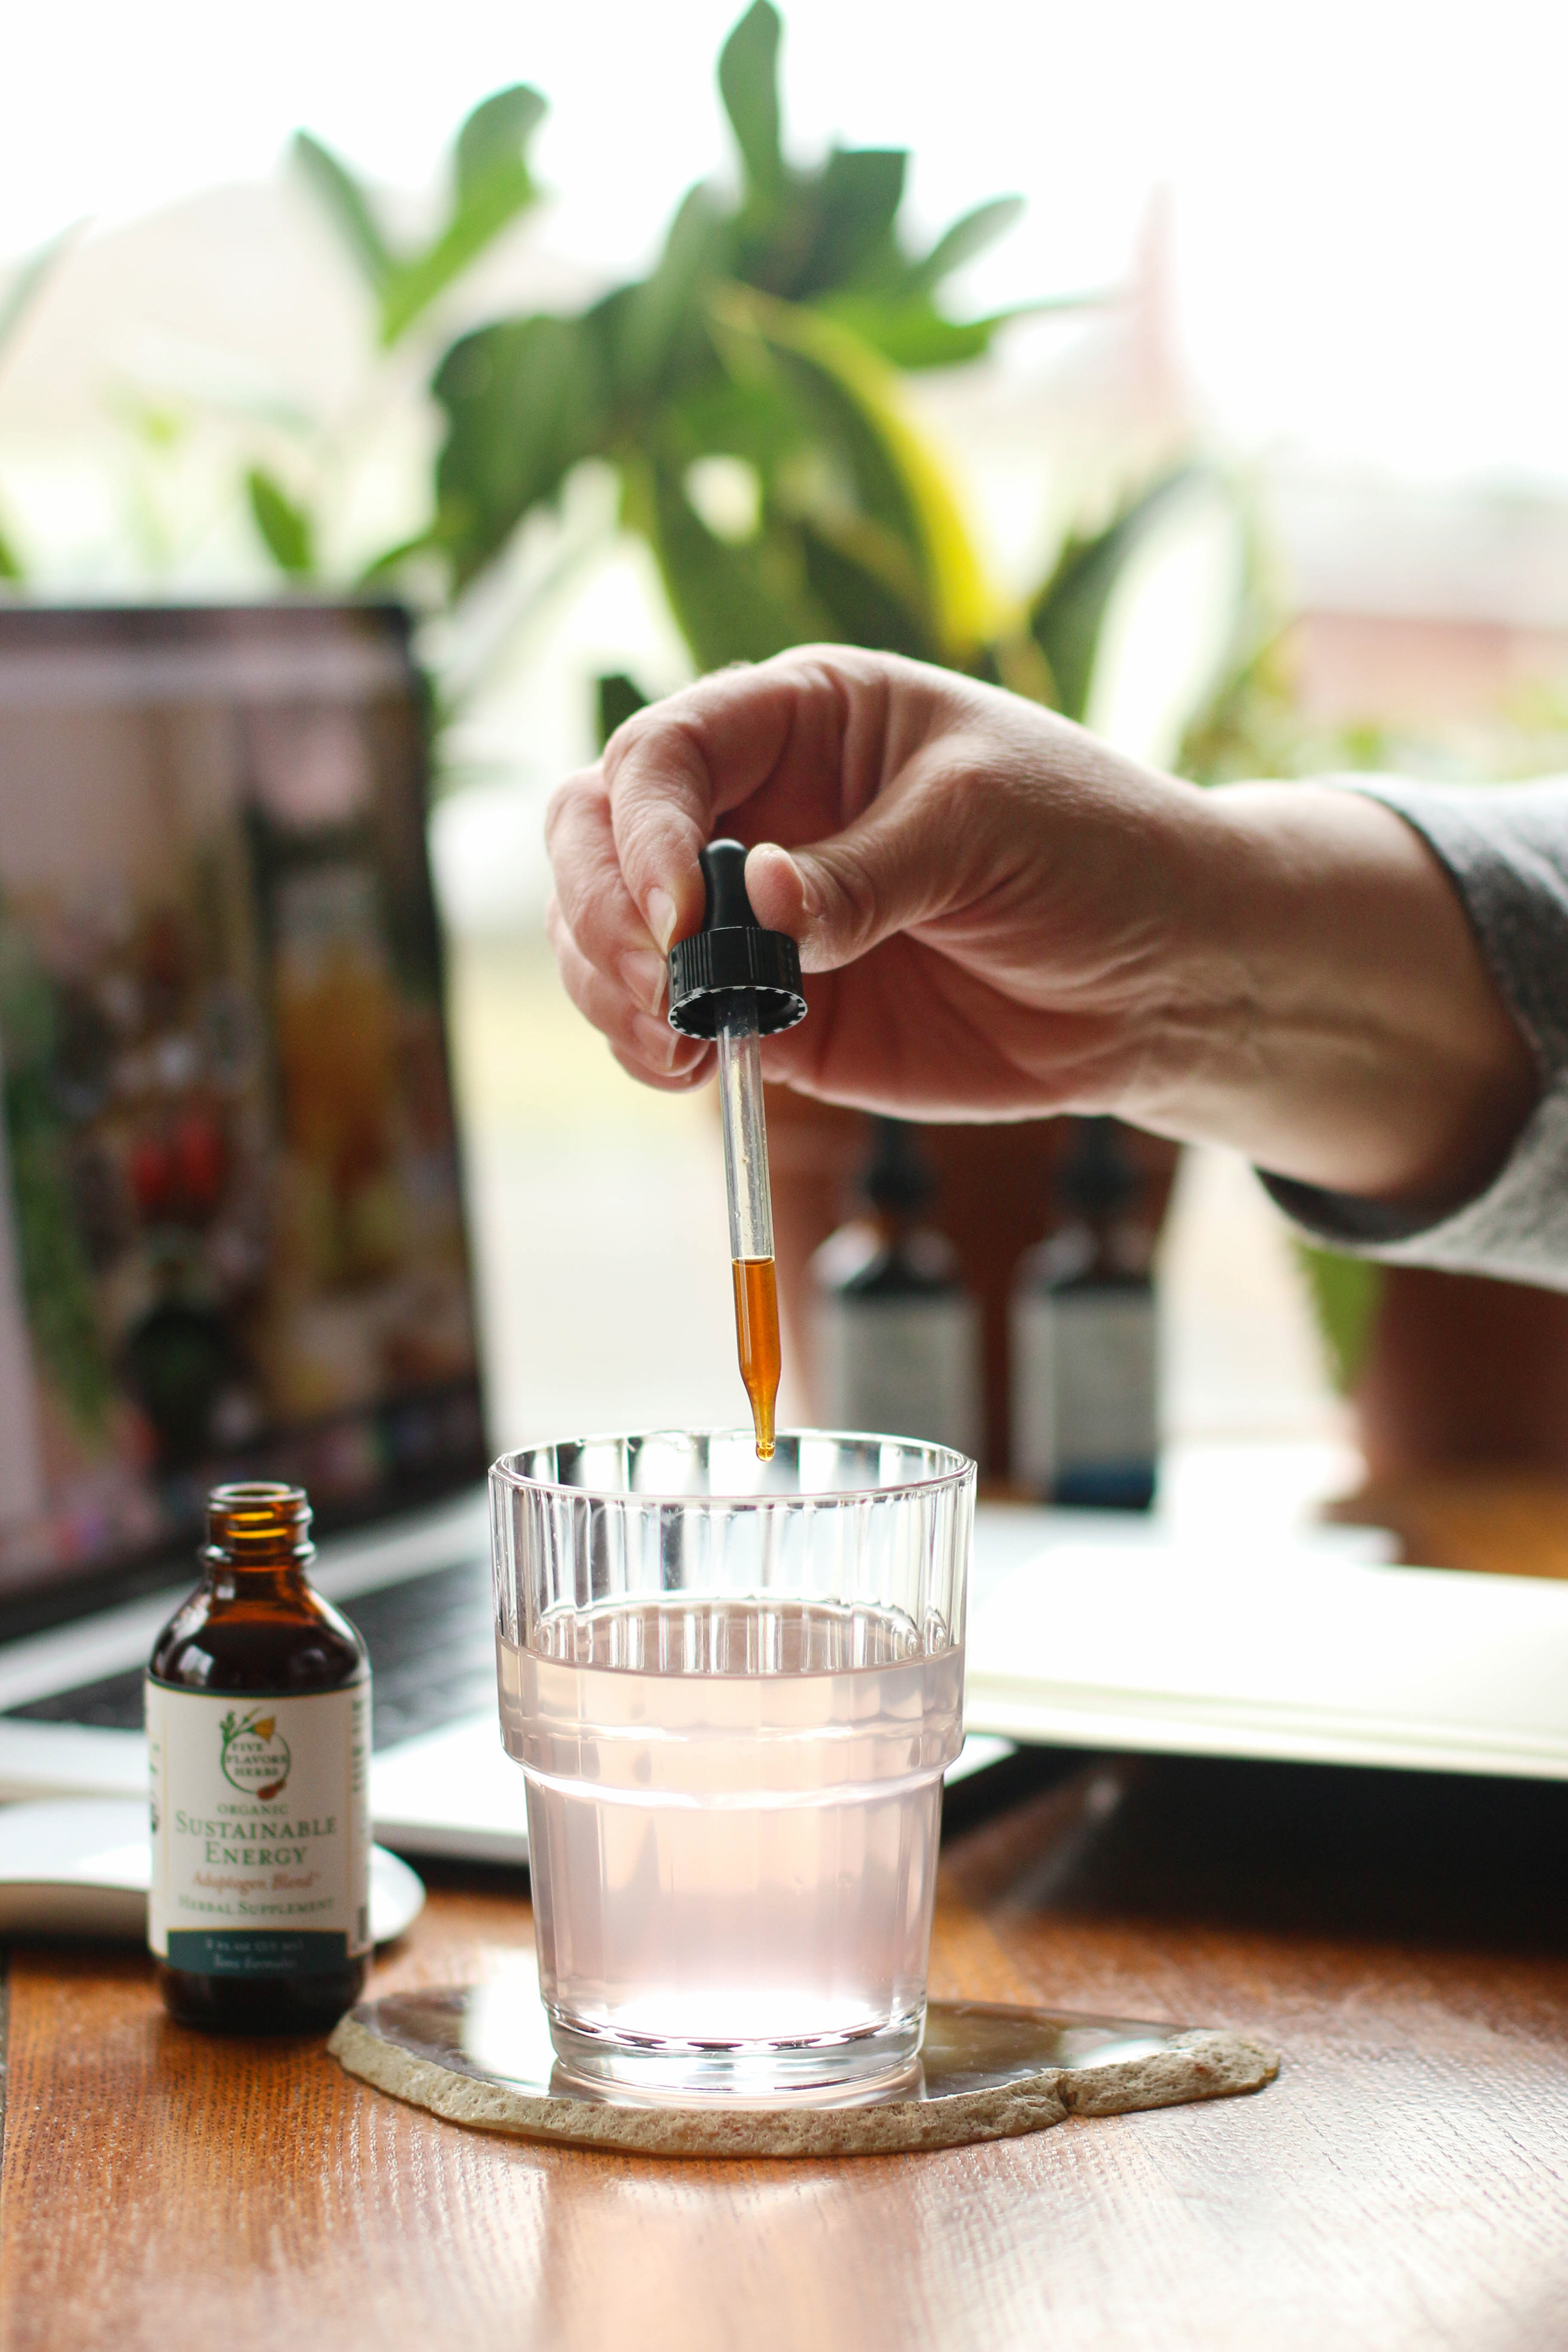 hand-holding-glass-dropper-cap-dropping-tincture-into-glass-of-water-with-work-from-home-desk-setup-in-background